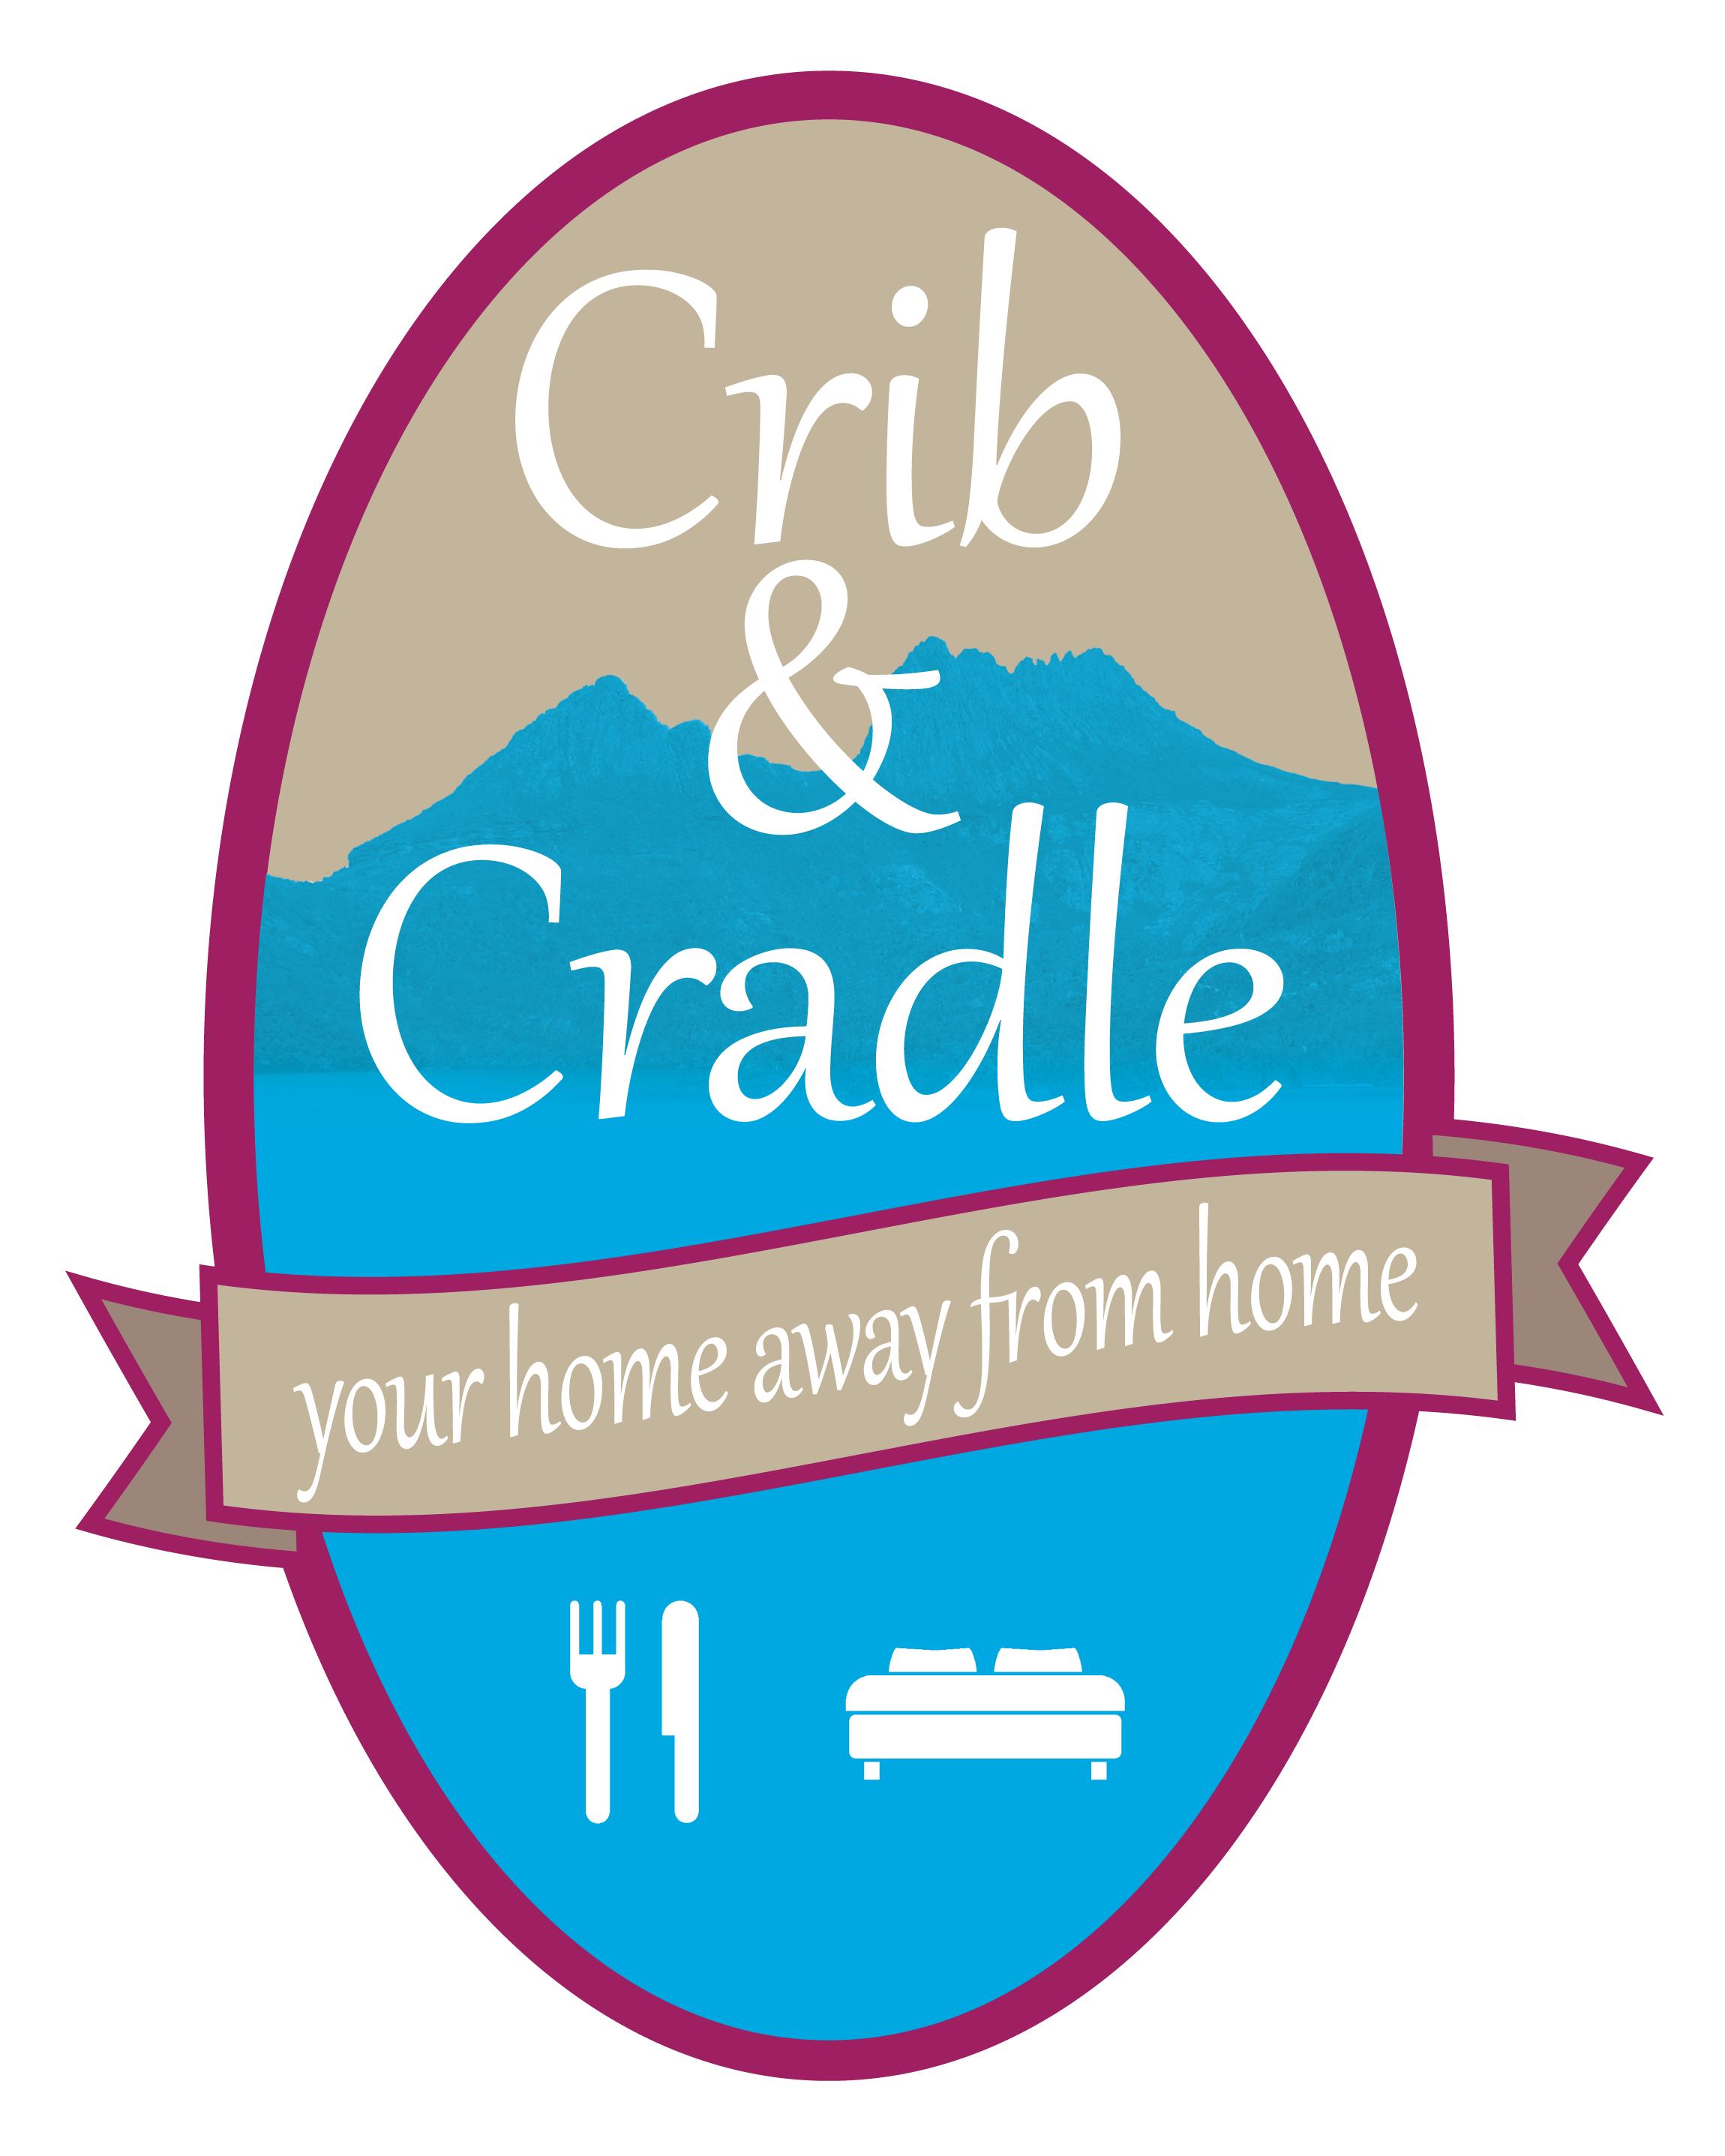 Crib & Cradle Logo and Images